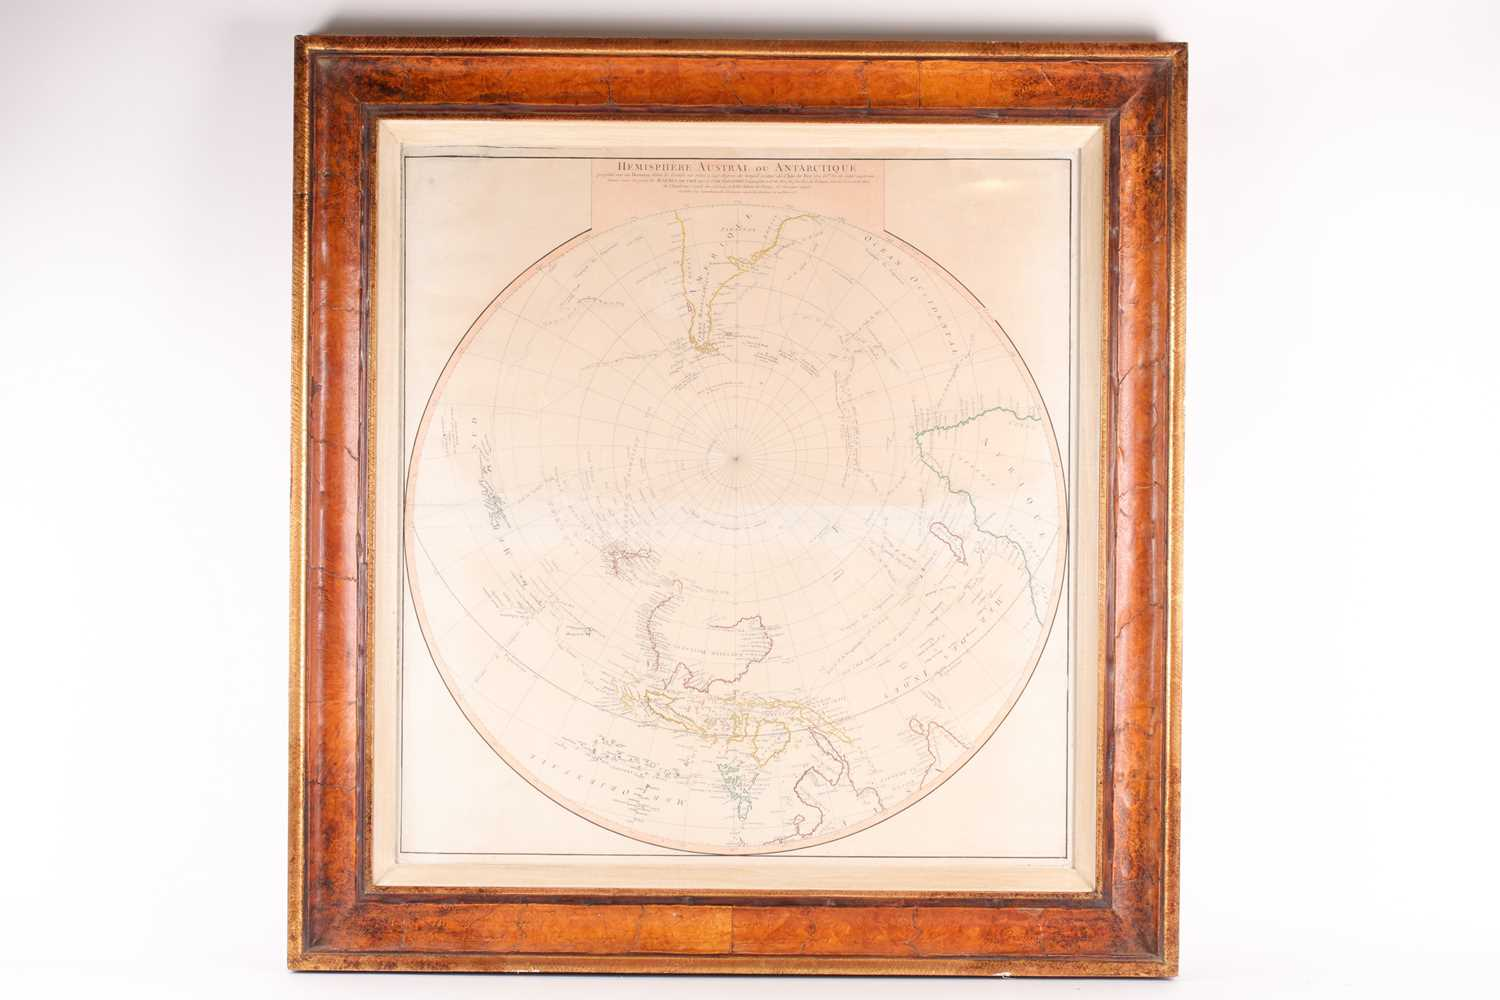 A framed French navigational circular map, 'Hemisphere Austral ou Antarctique', 18th century - Image 5 of 5